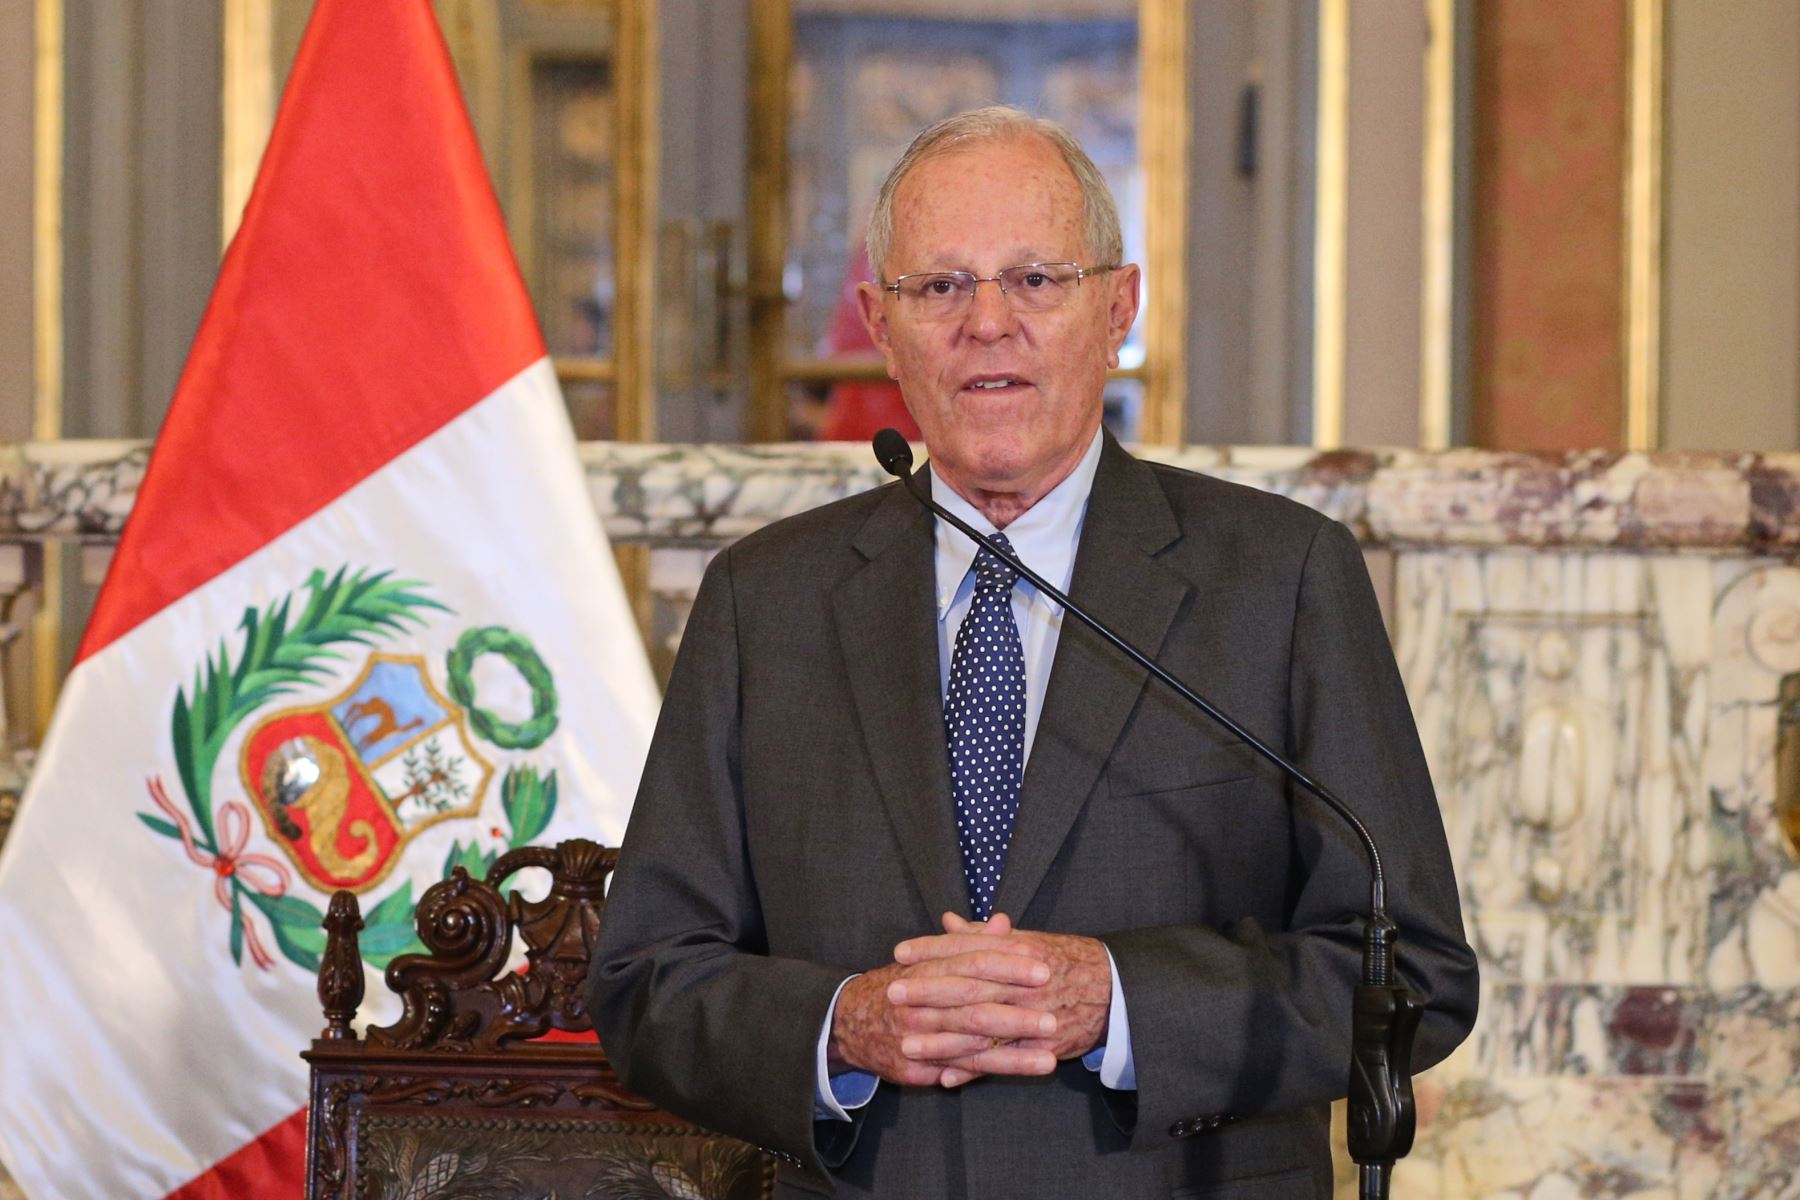 Peru: Fighting corruption, providing water to become President ...